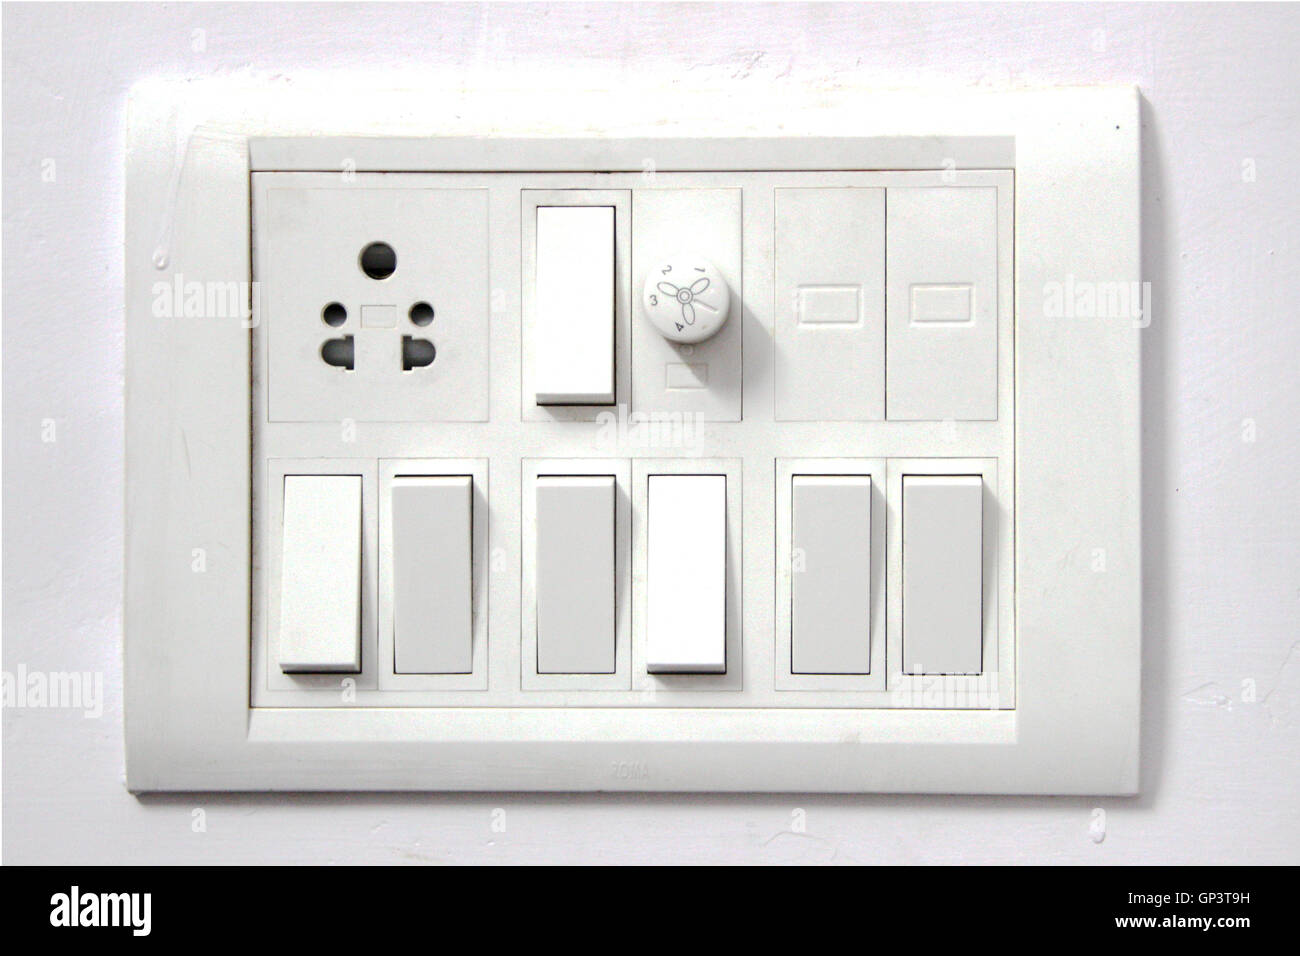 Switch Board Stock Photos & Switch Board Stock Images - Alamy